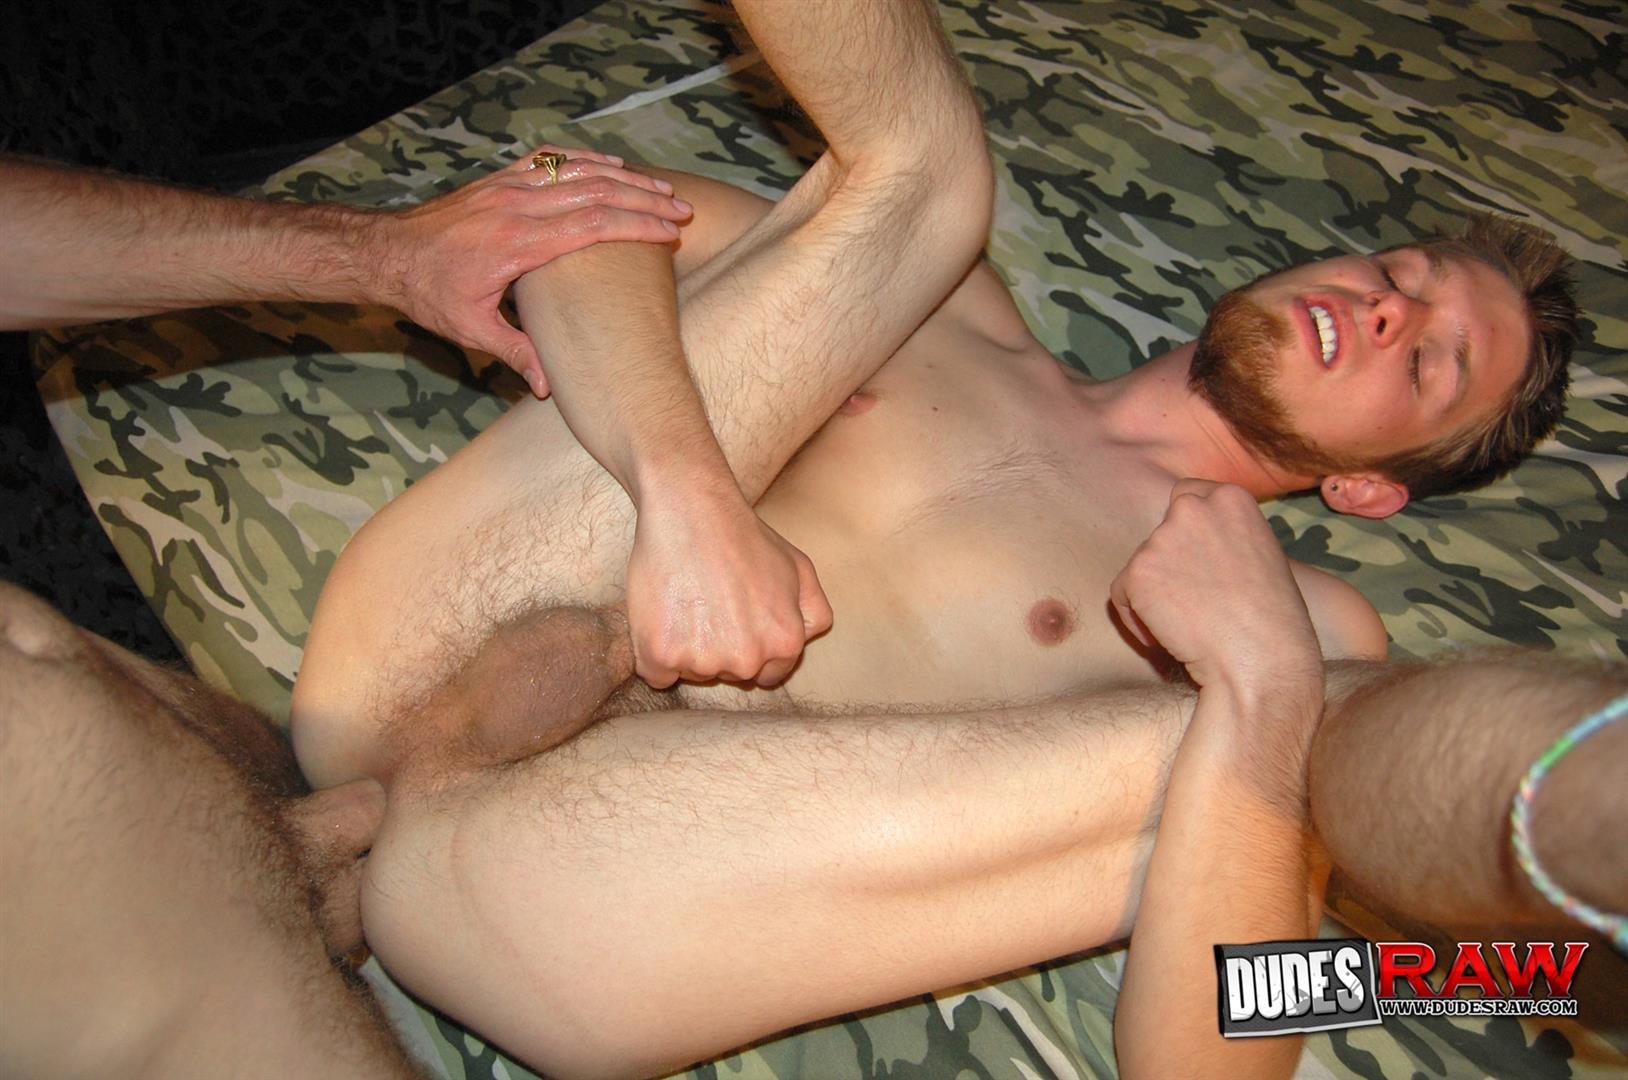 Dudes Raw Jacques Satori and Zeke Stardust Army Guys Barebacking Amateur Gay Porn 21 Army Guys Discover Gay Sex and Bareback Fuck Each Other